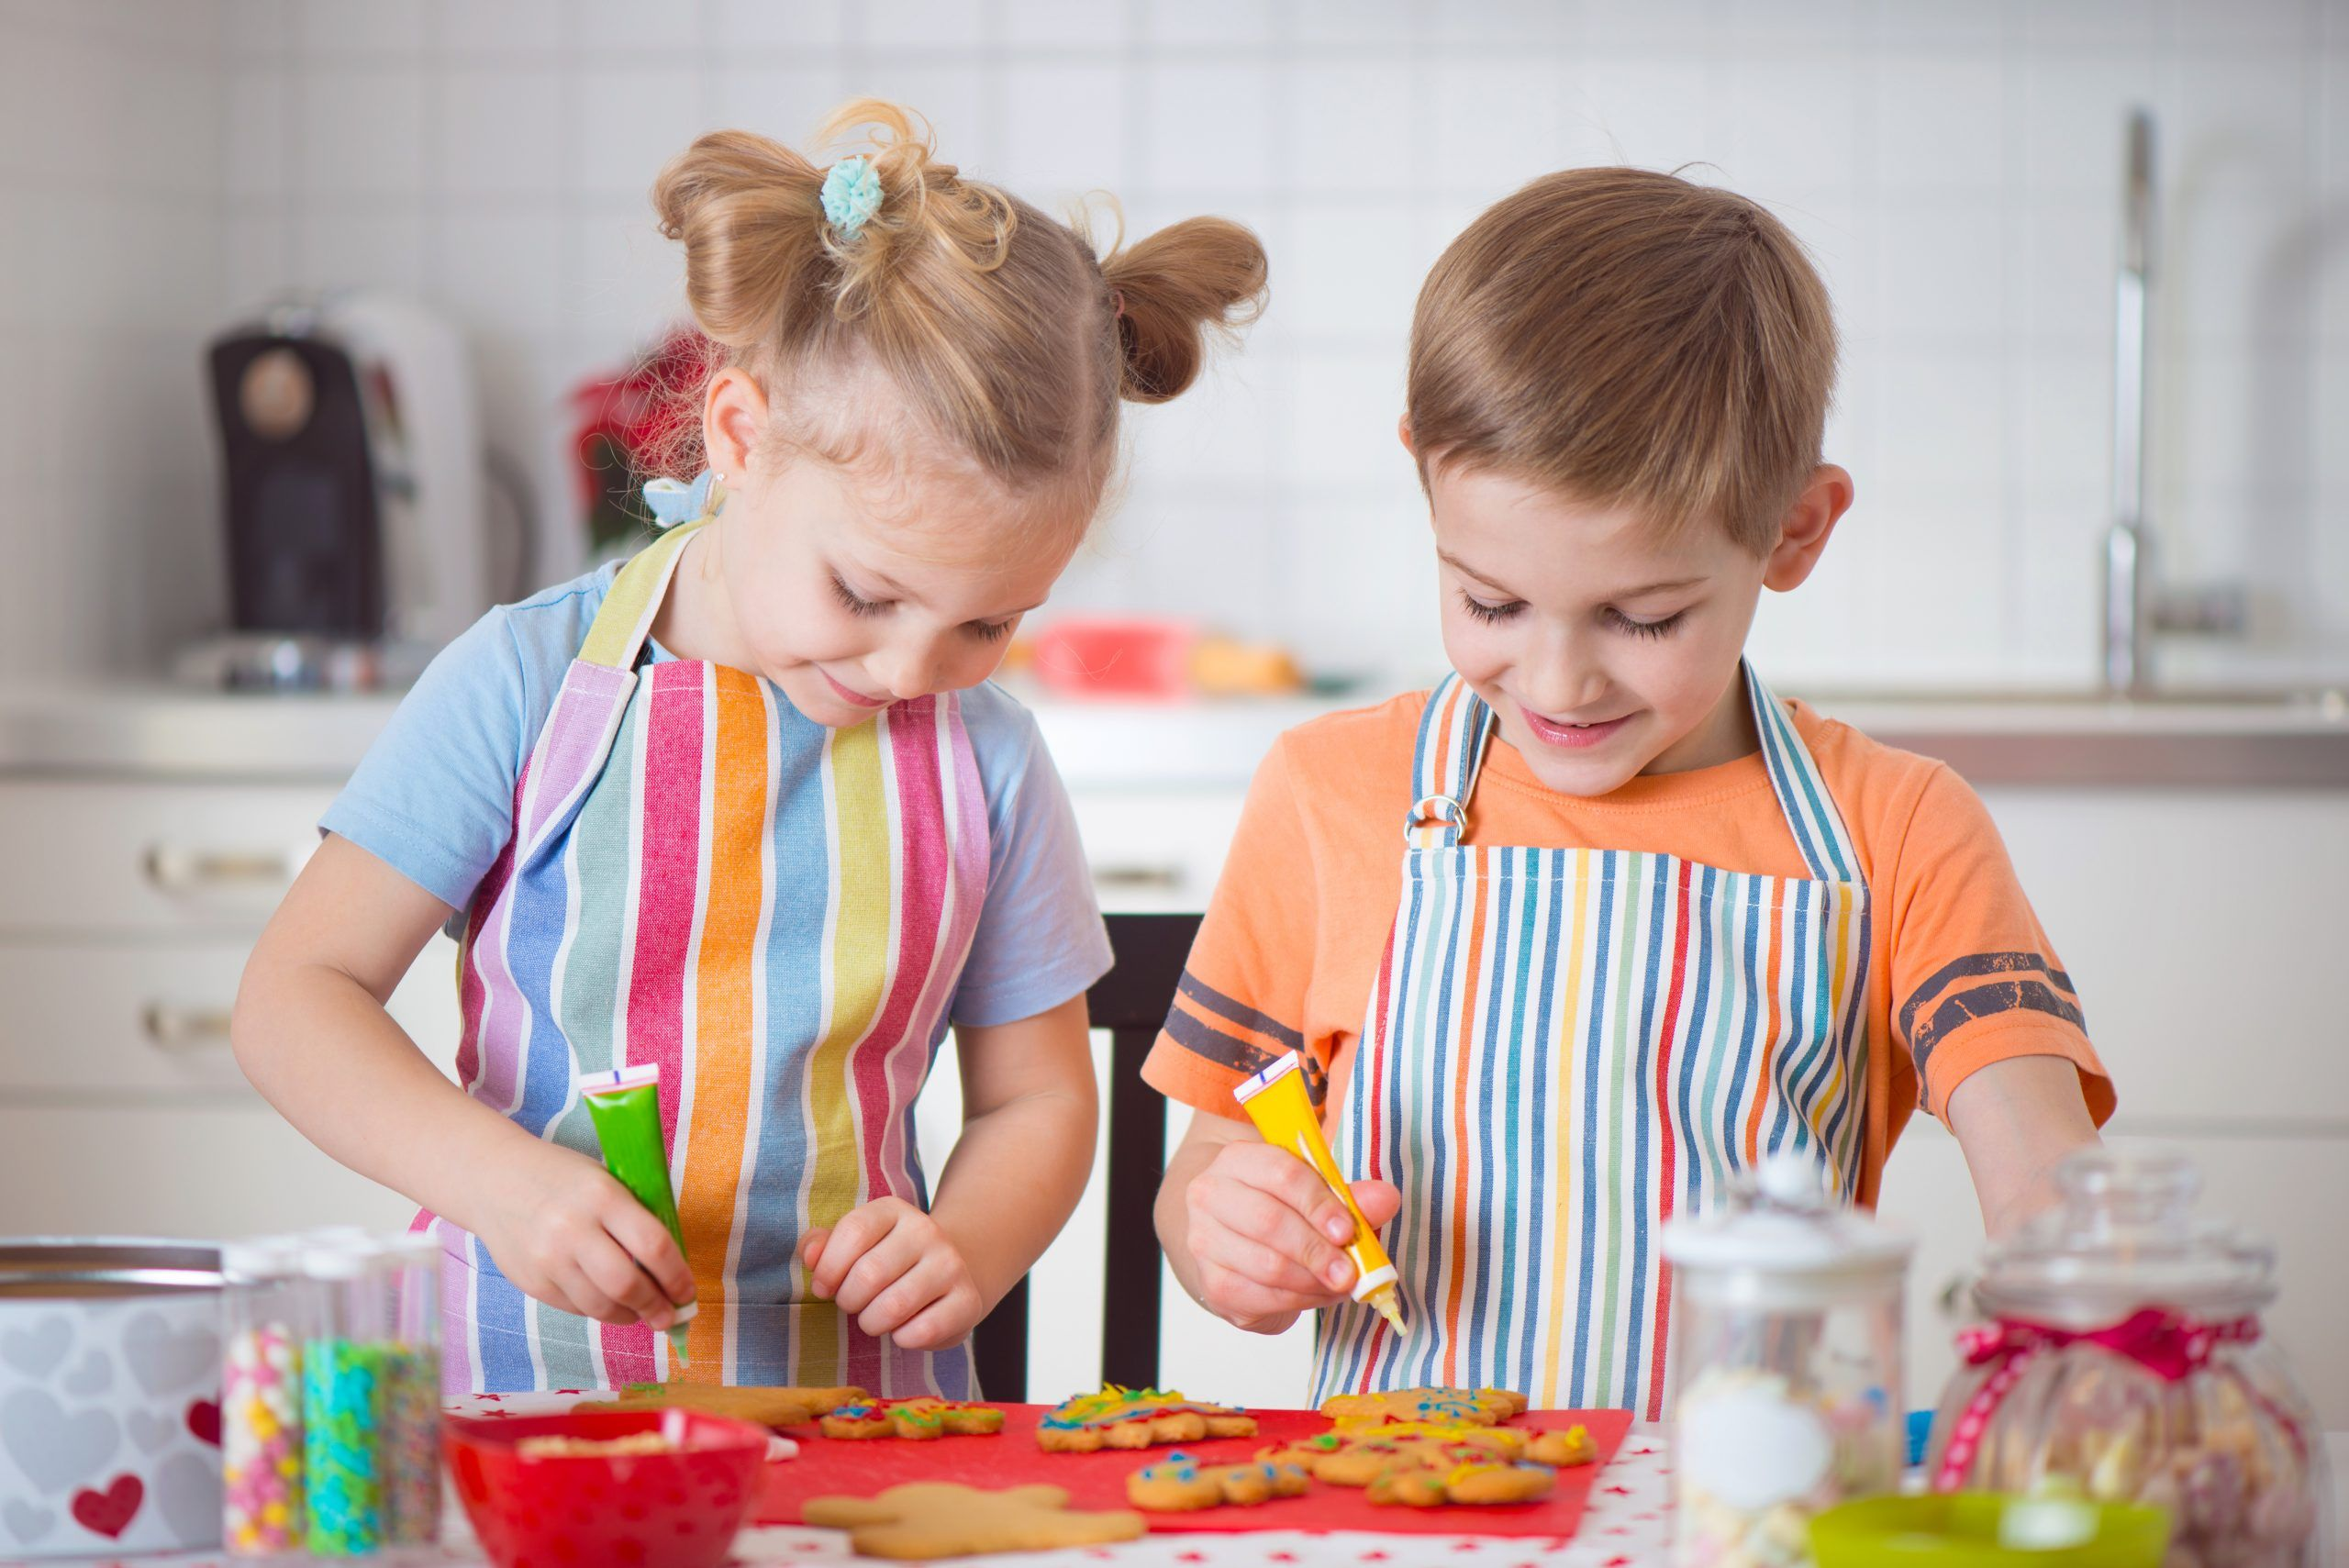 Cute,Little,Boy,And,Girl,Preparing,Christmas,Cookies,At,Home